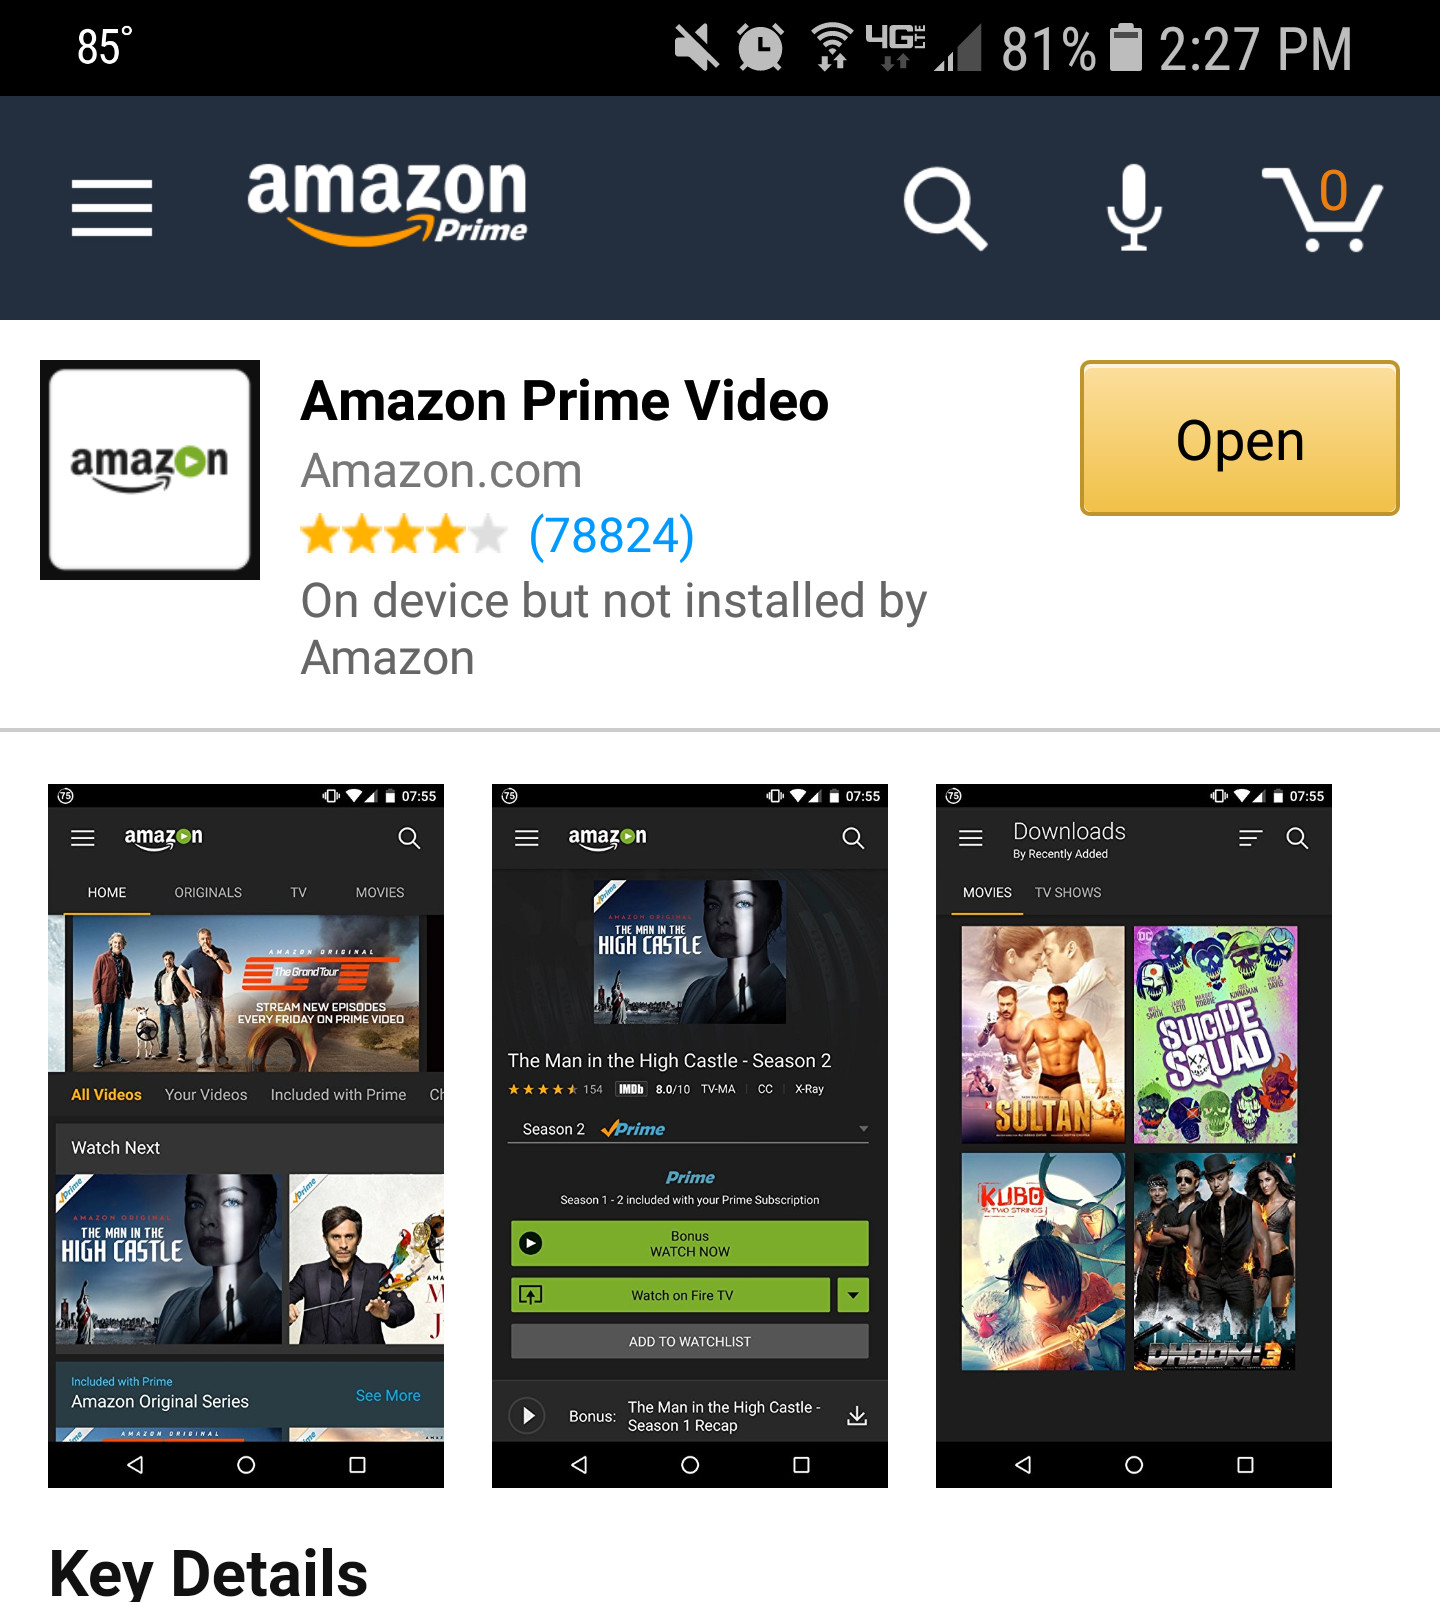 amazon prime video on chromecast